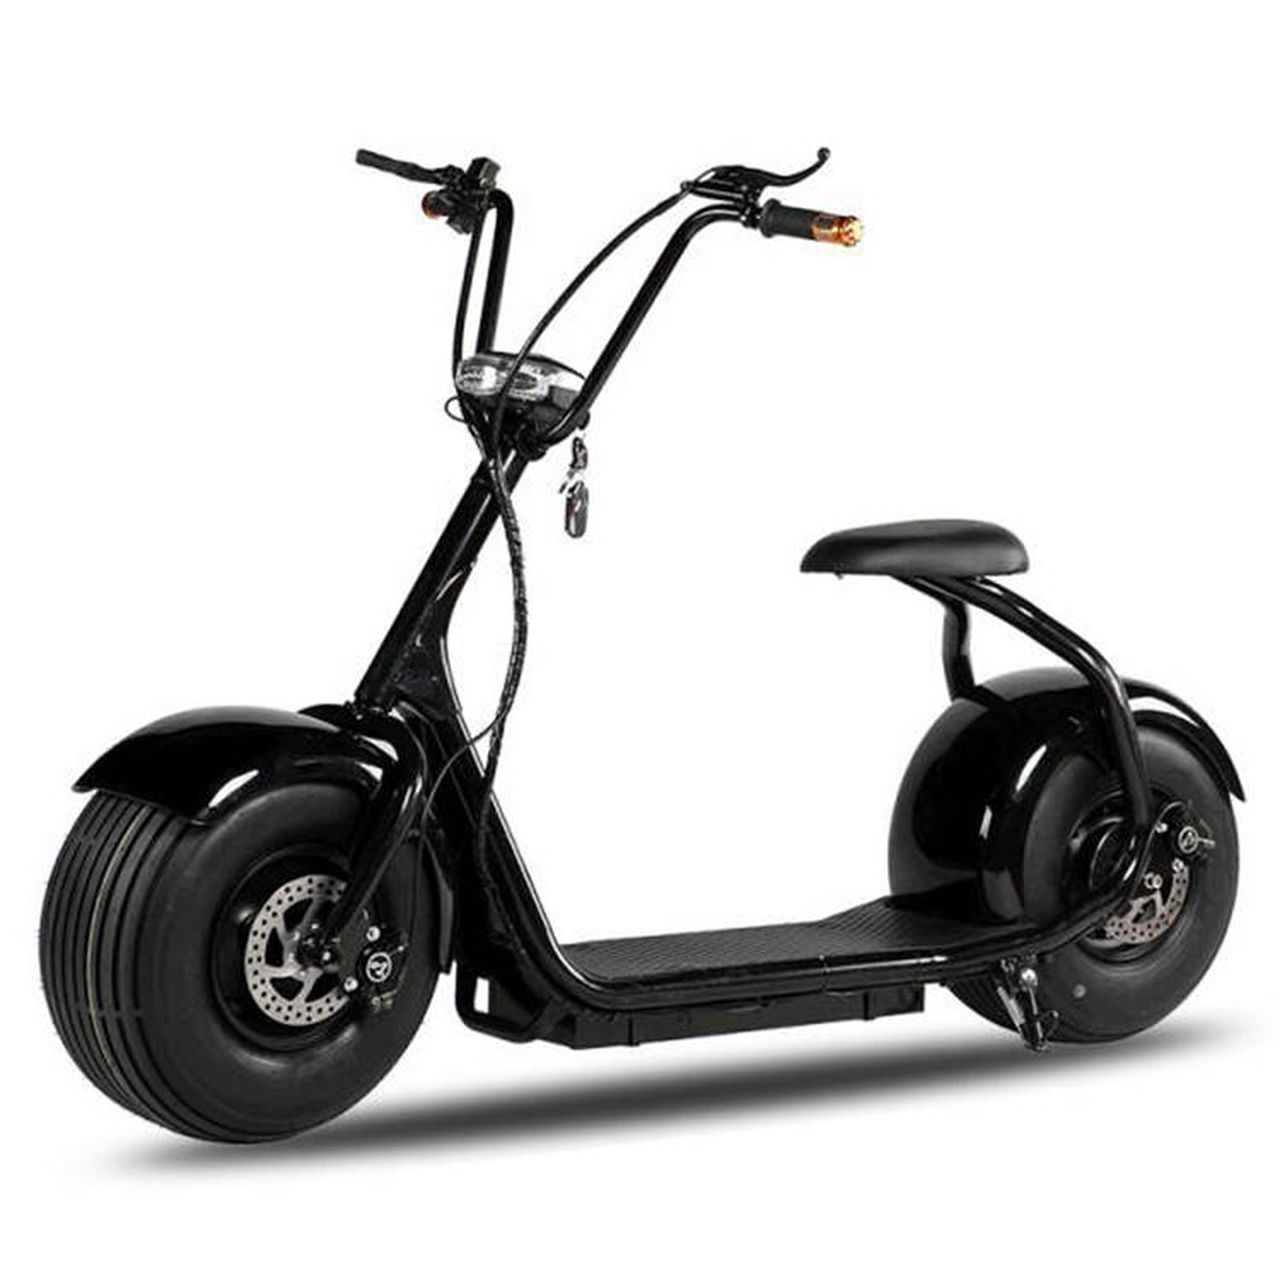 Moto Scooter Elétrica Eco Rise 2000w Black / White